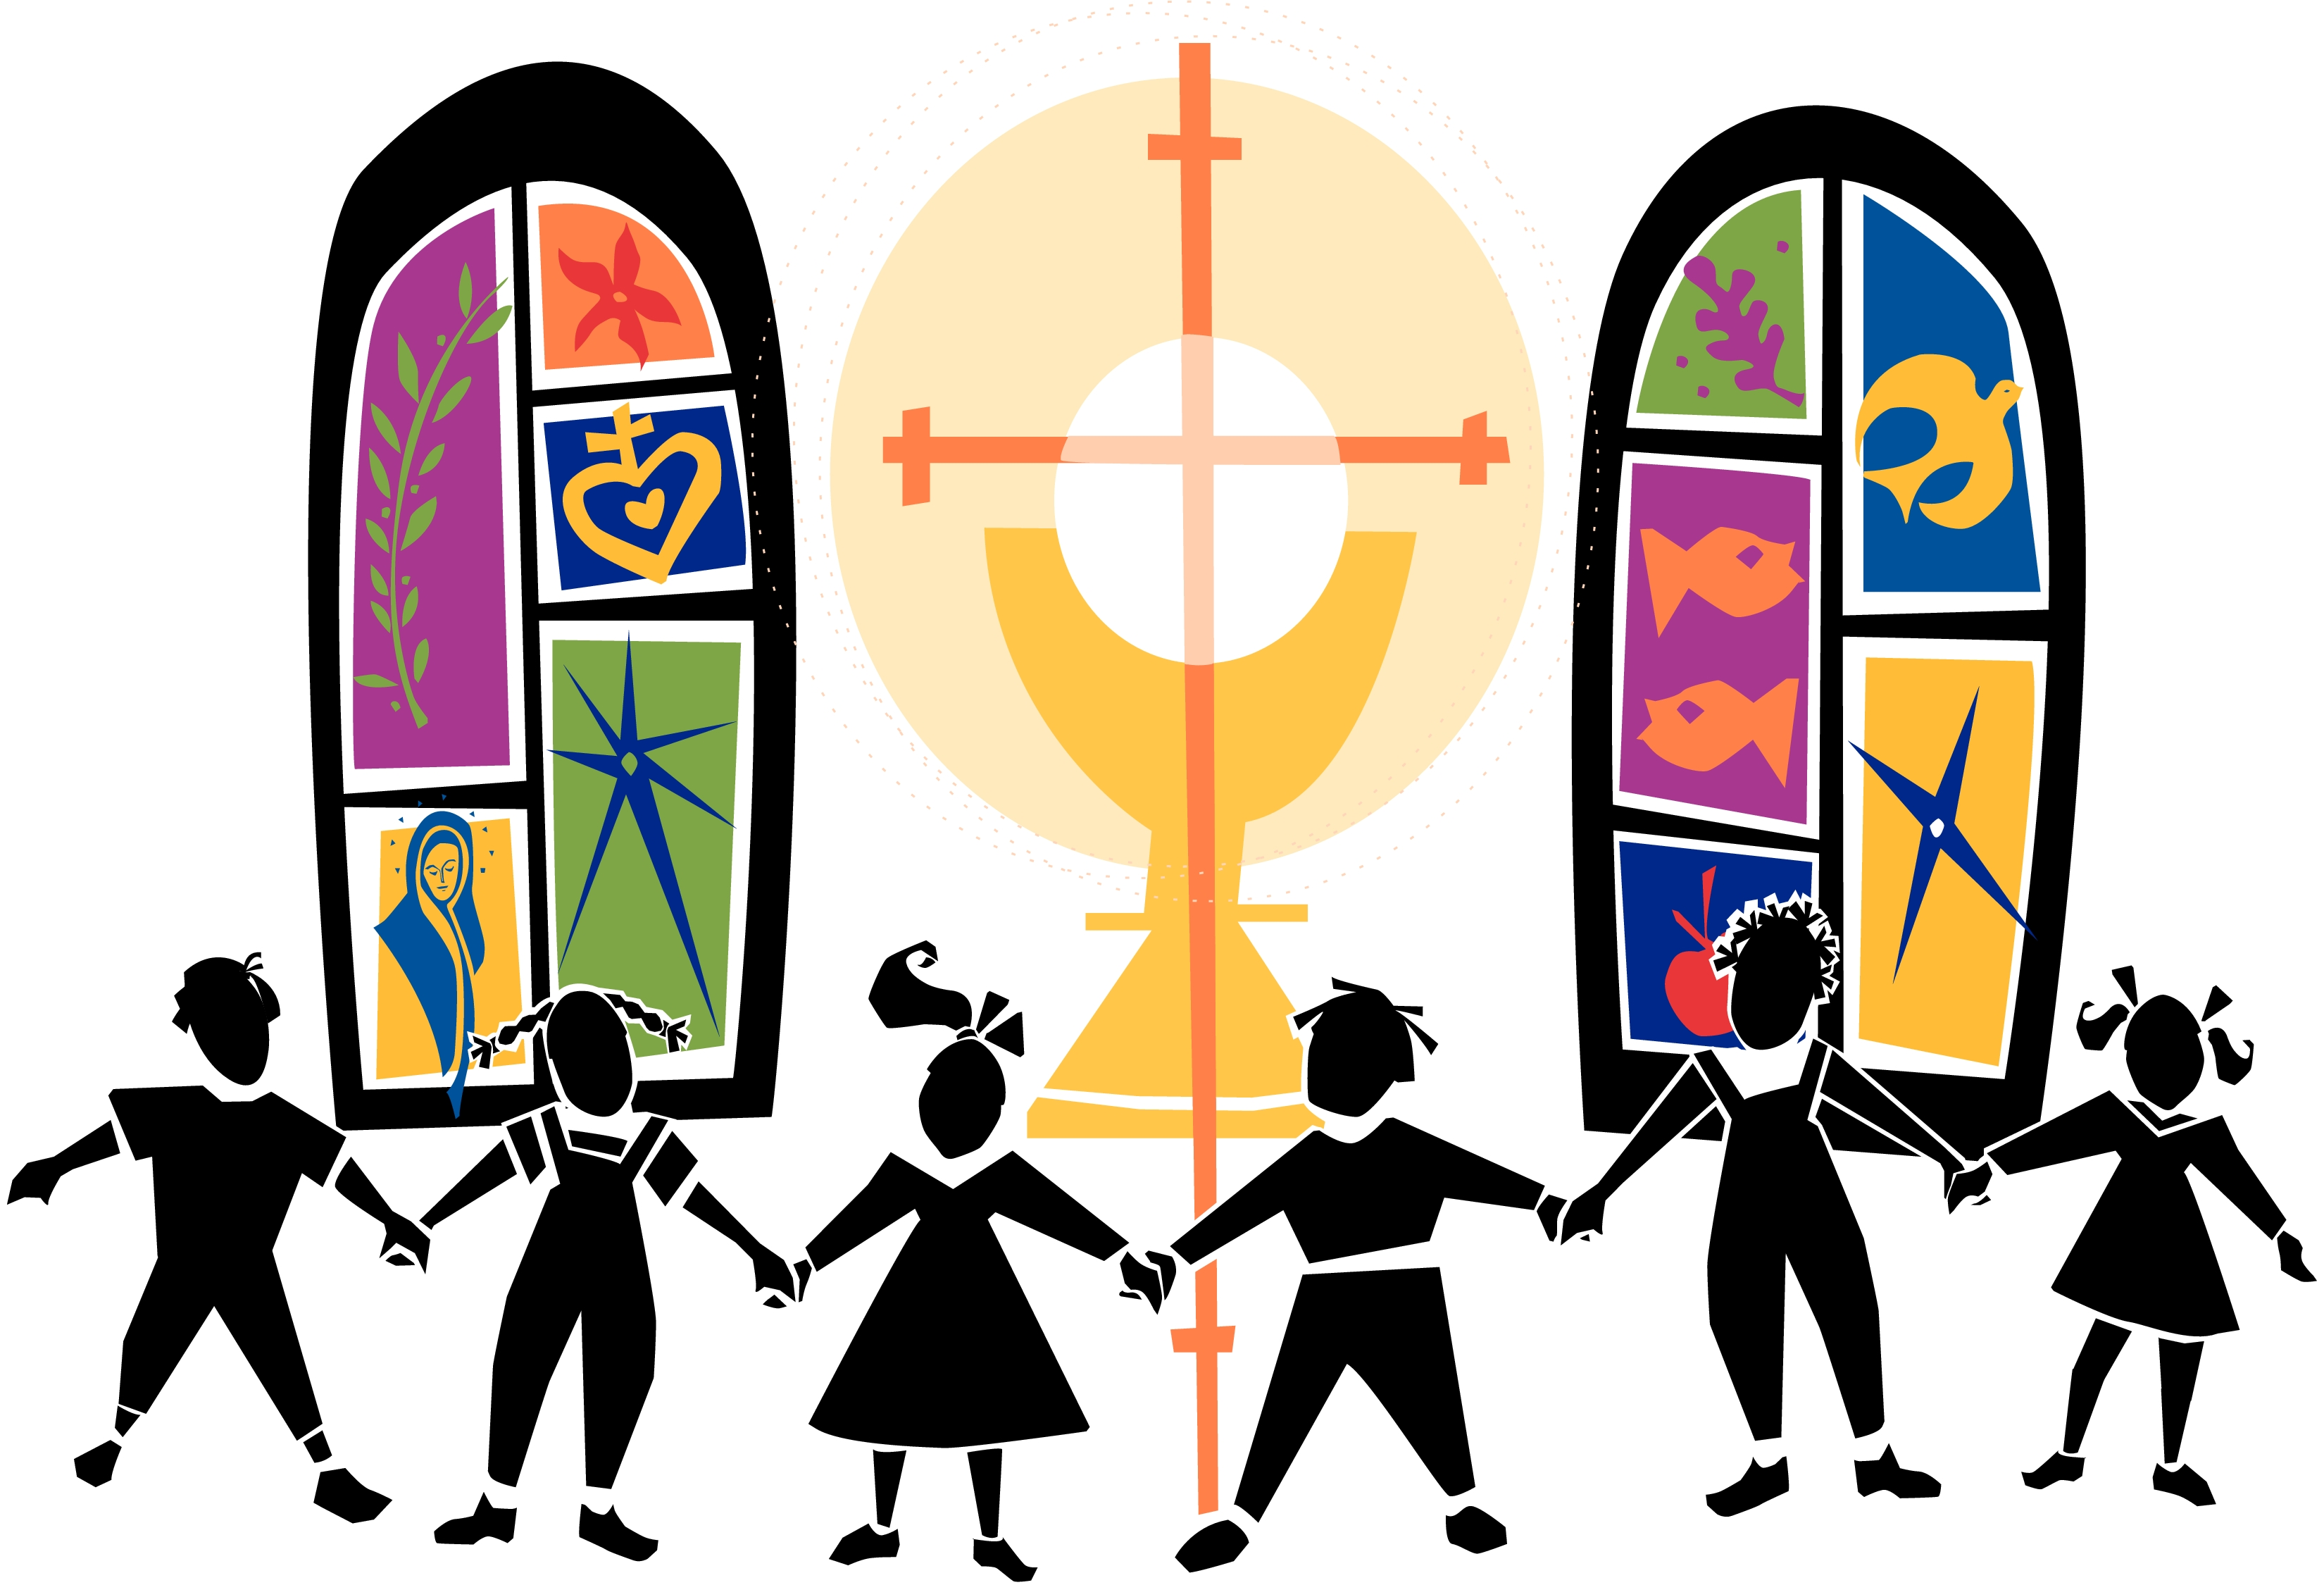 Chain clipart family. Church images panda free